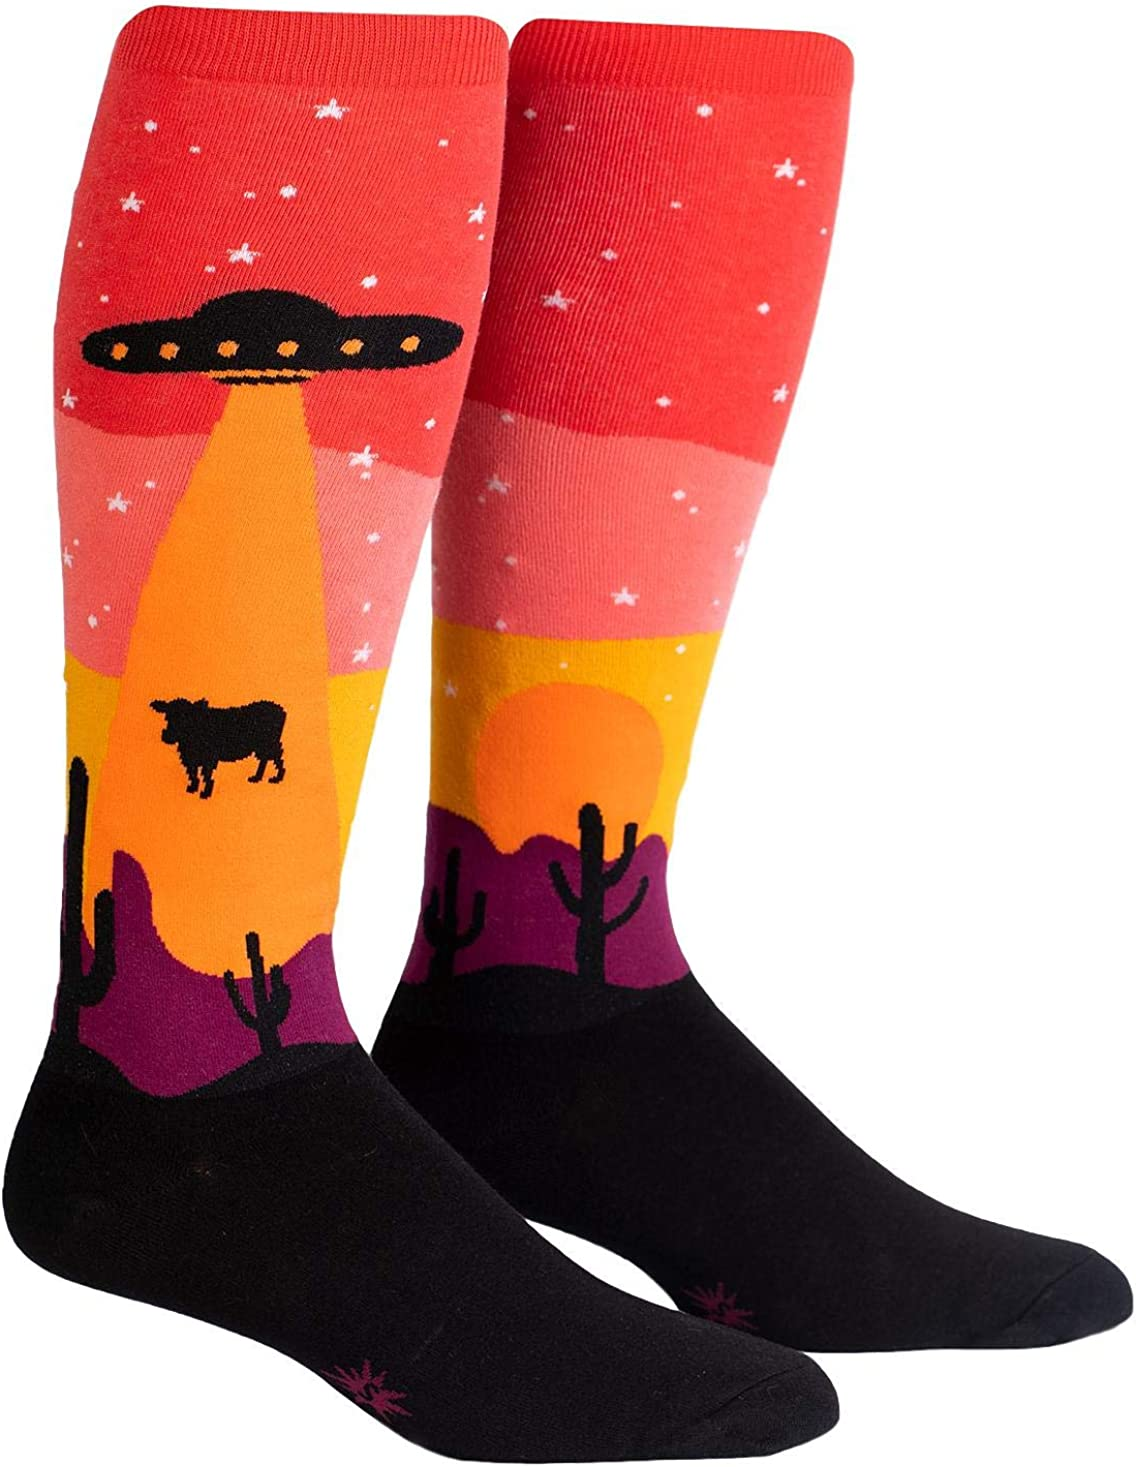 Sock It To Me Wide-Calf High Stretch Very popular Knee Max 80% OFF Socks